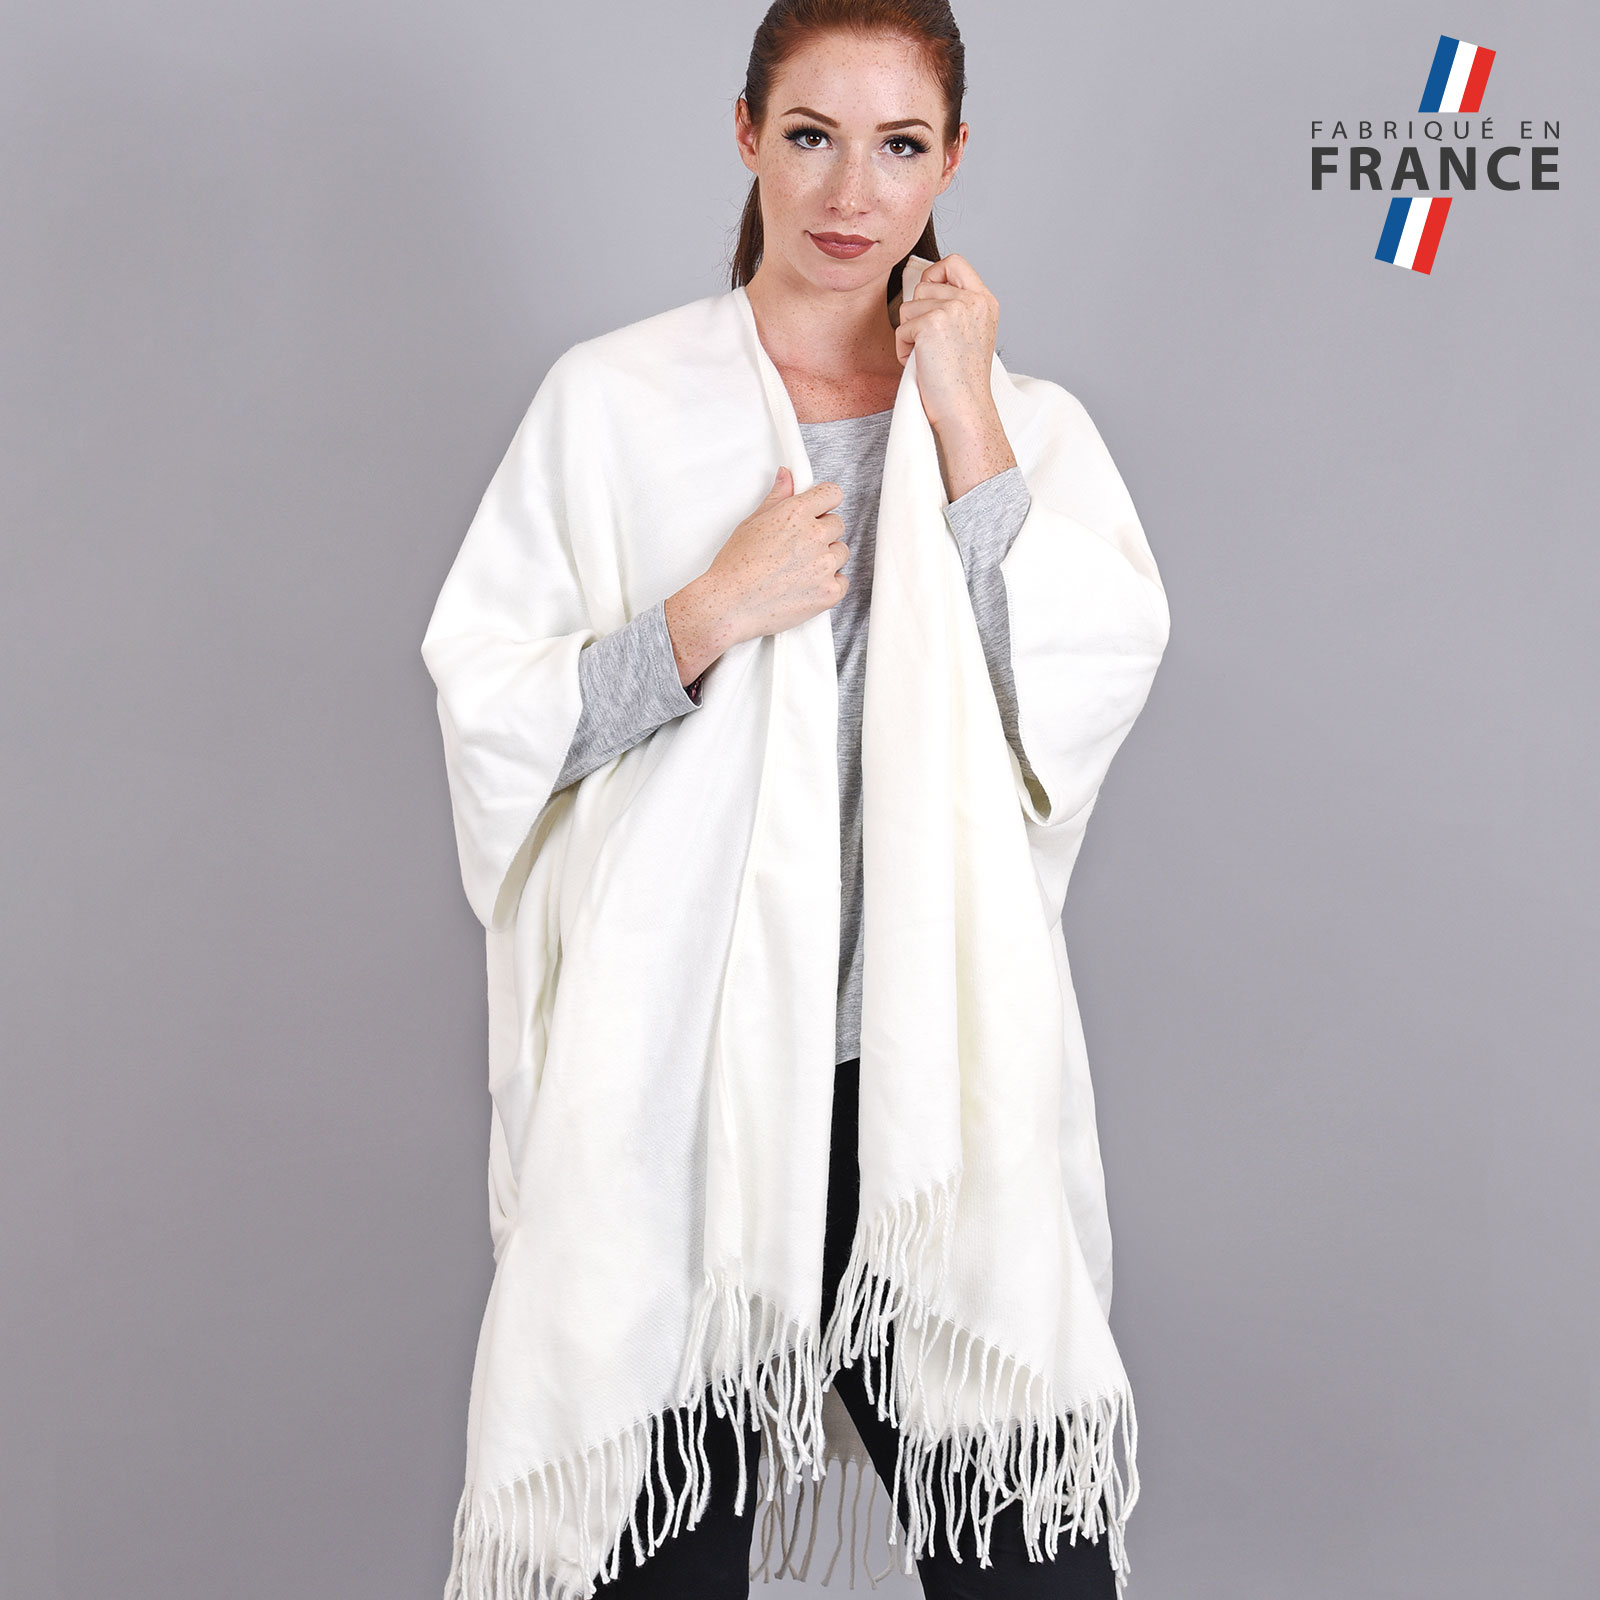 AT-03986-VF16-1-LB_FR-poncho-femme-hiver-larges-poches